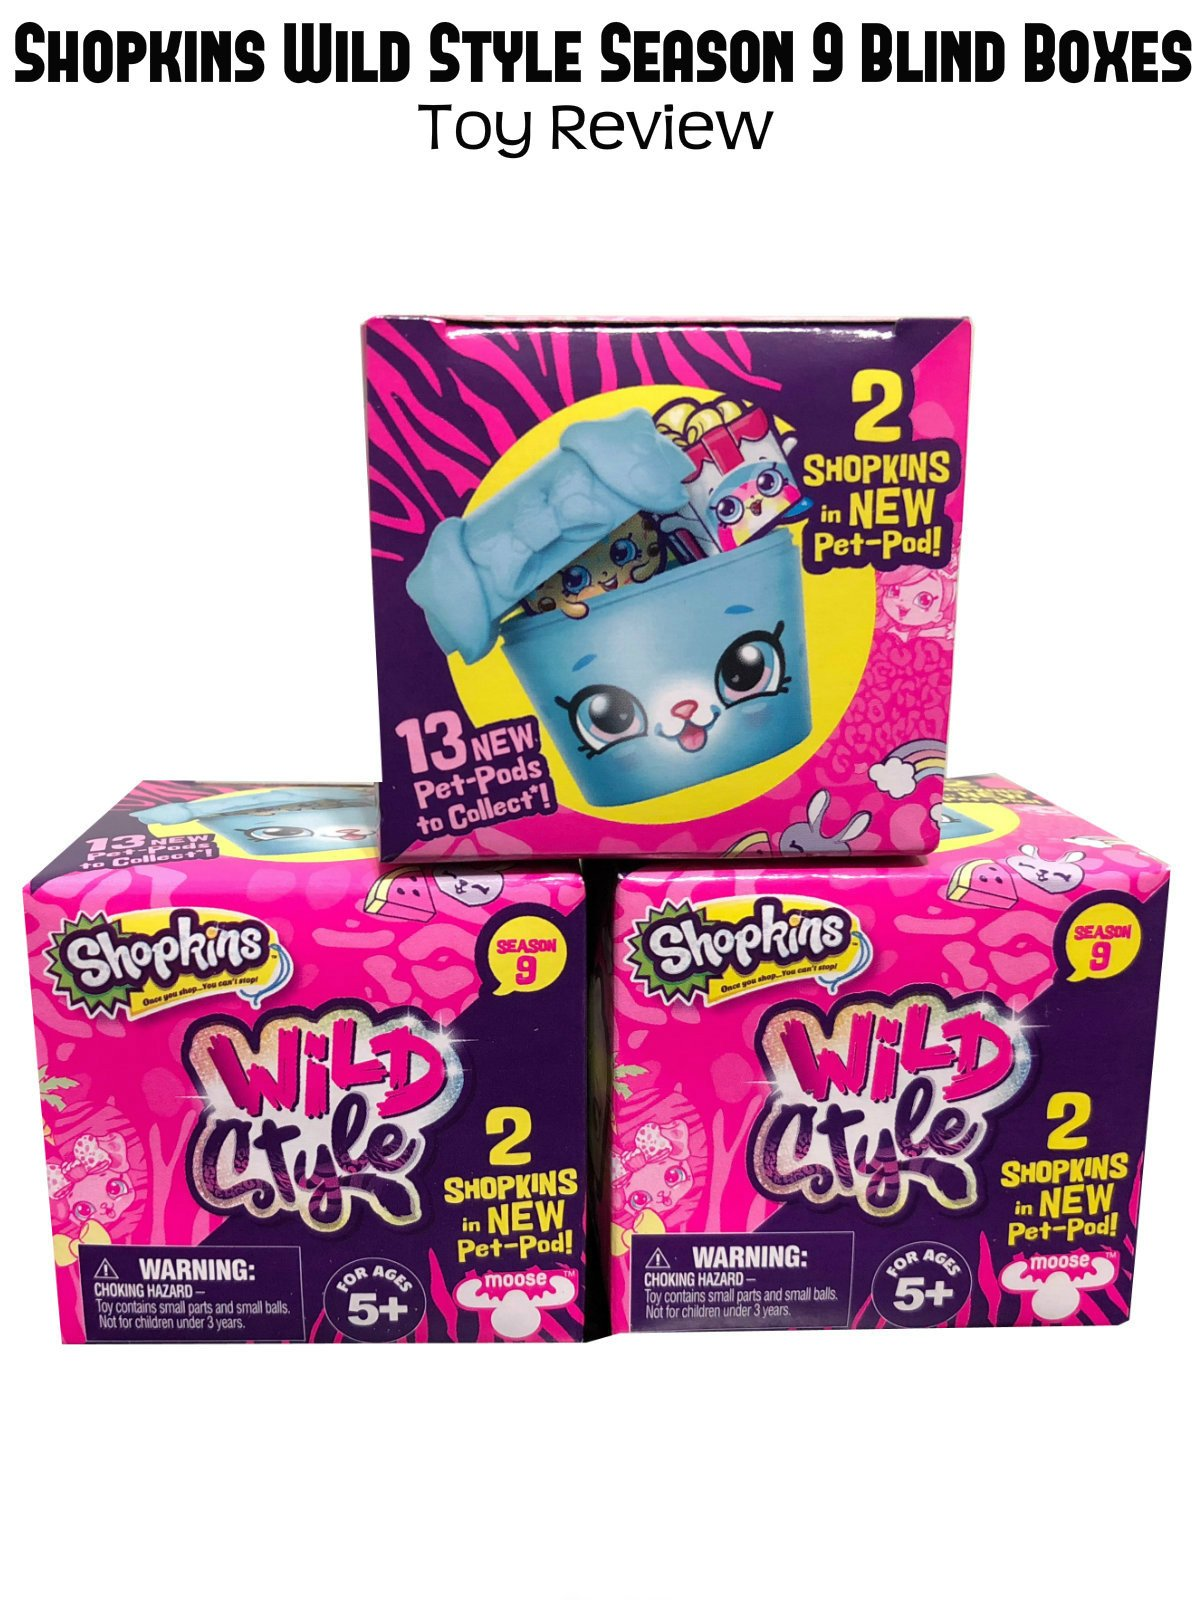 Review: Shopkins Wild Style Season 9 Blind Boxes Toy Review